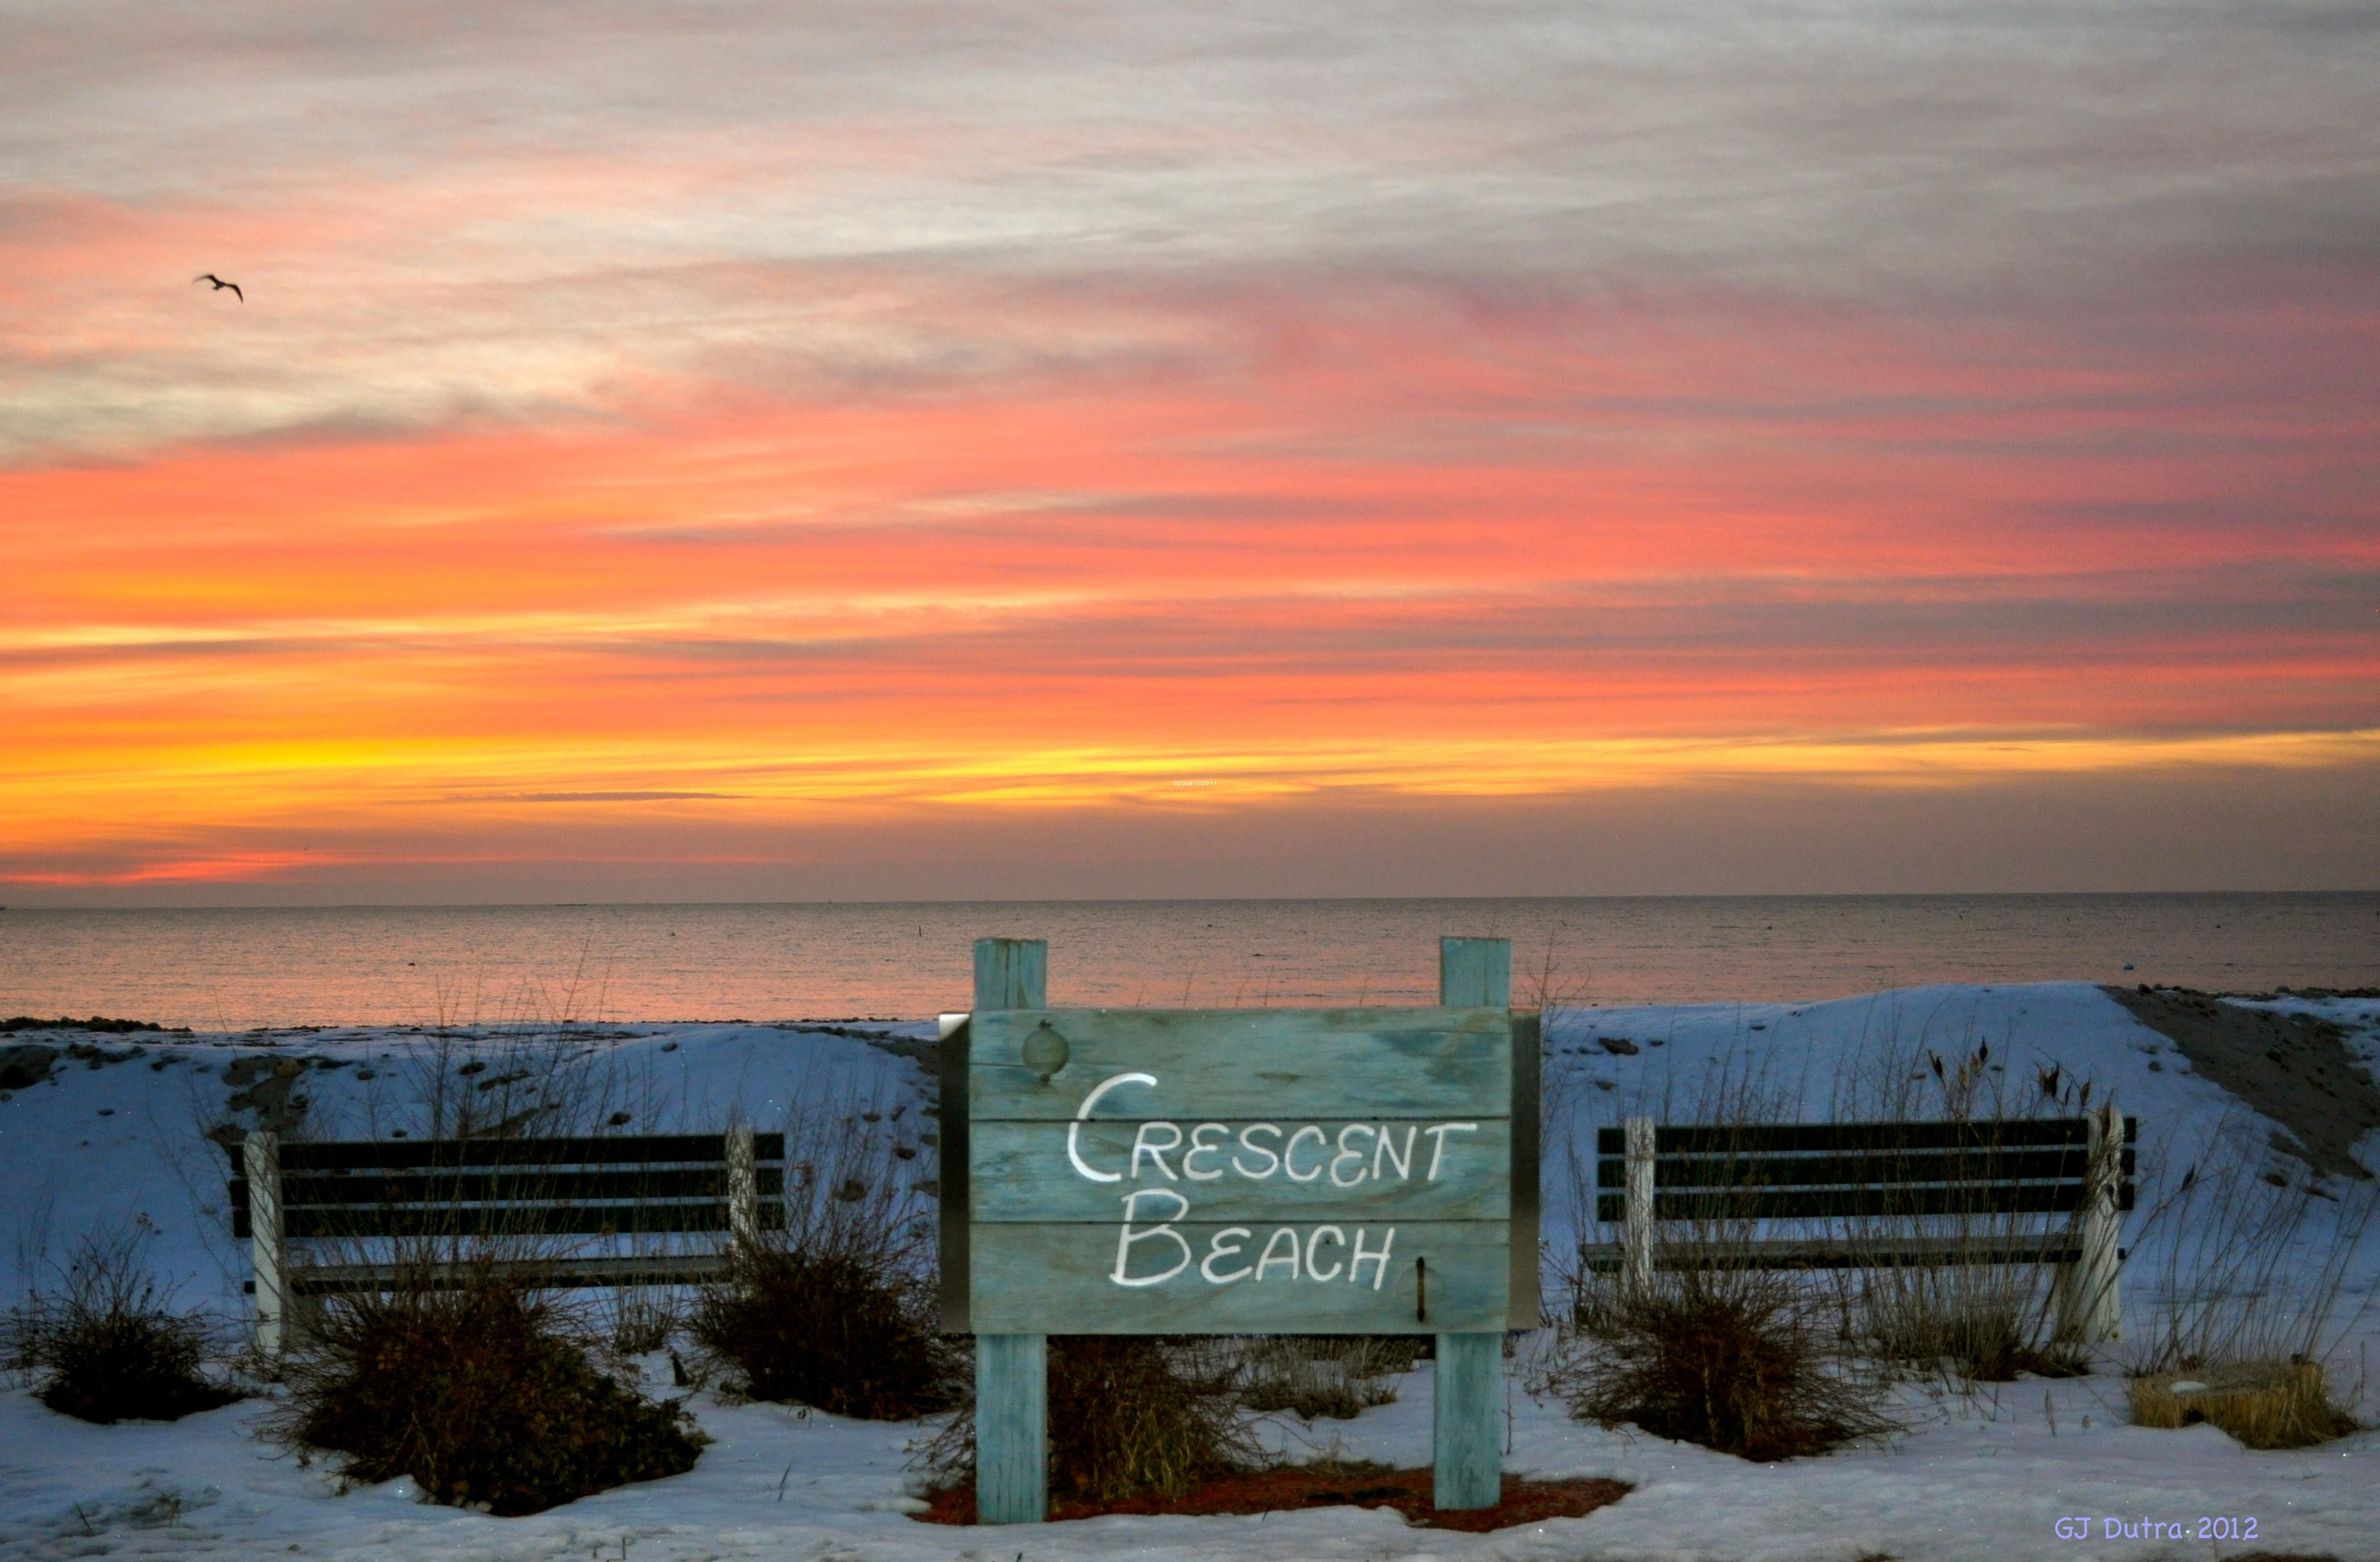 Crescent beach niantic ct favorite places pinterest crescent beach niantic ct sciox Choice Image